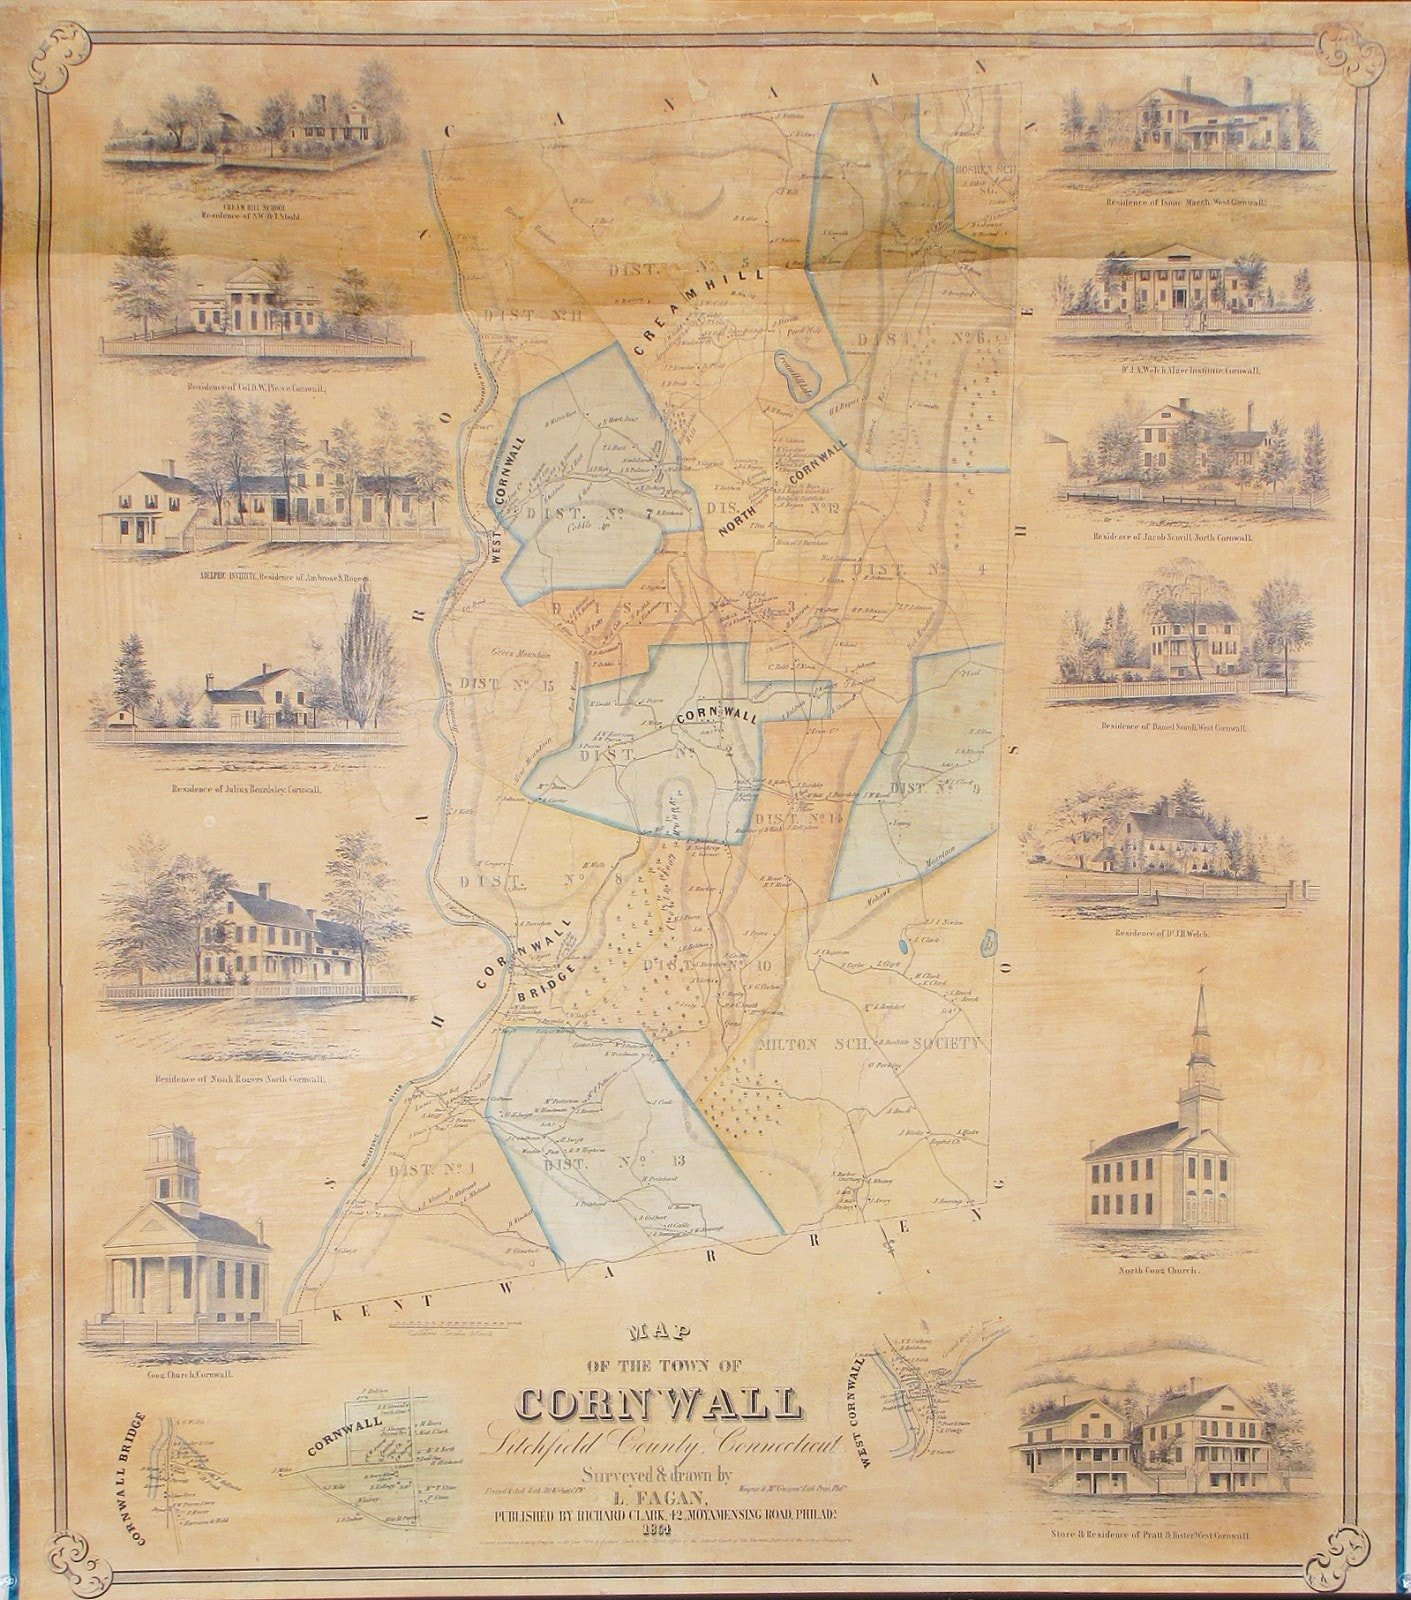 The first printed map of Cornwall, Conn. - Rare & Antique Maps